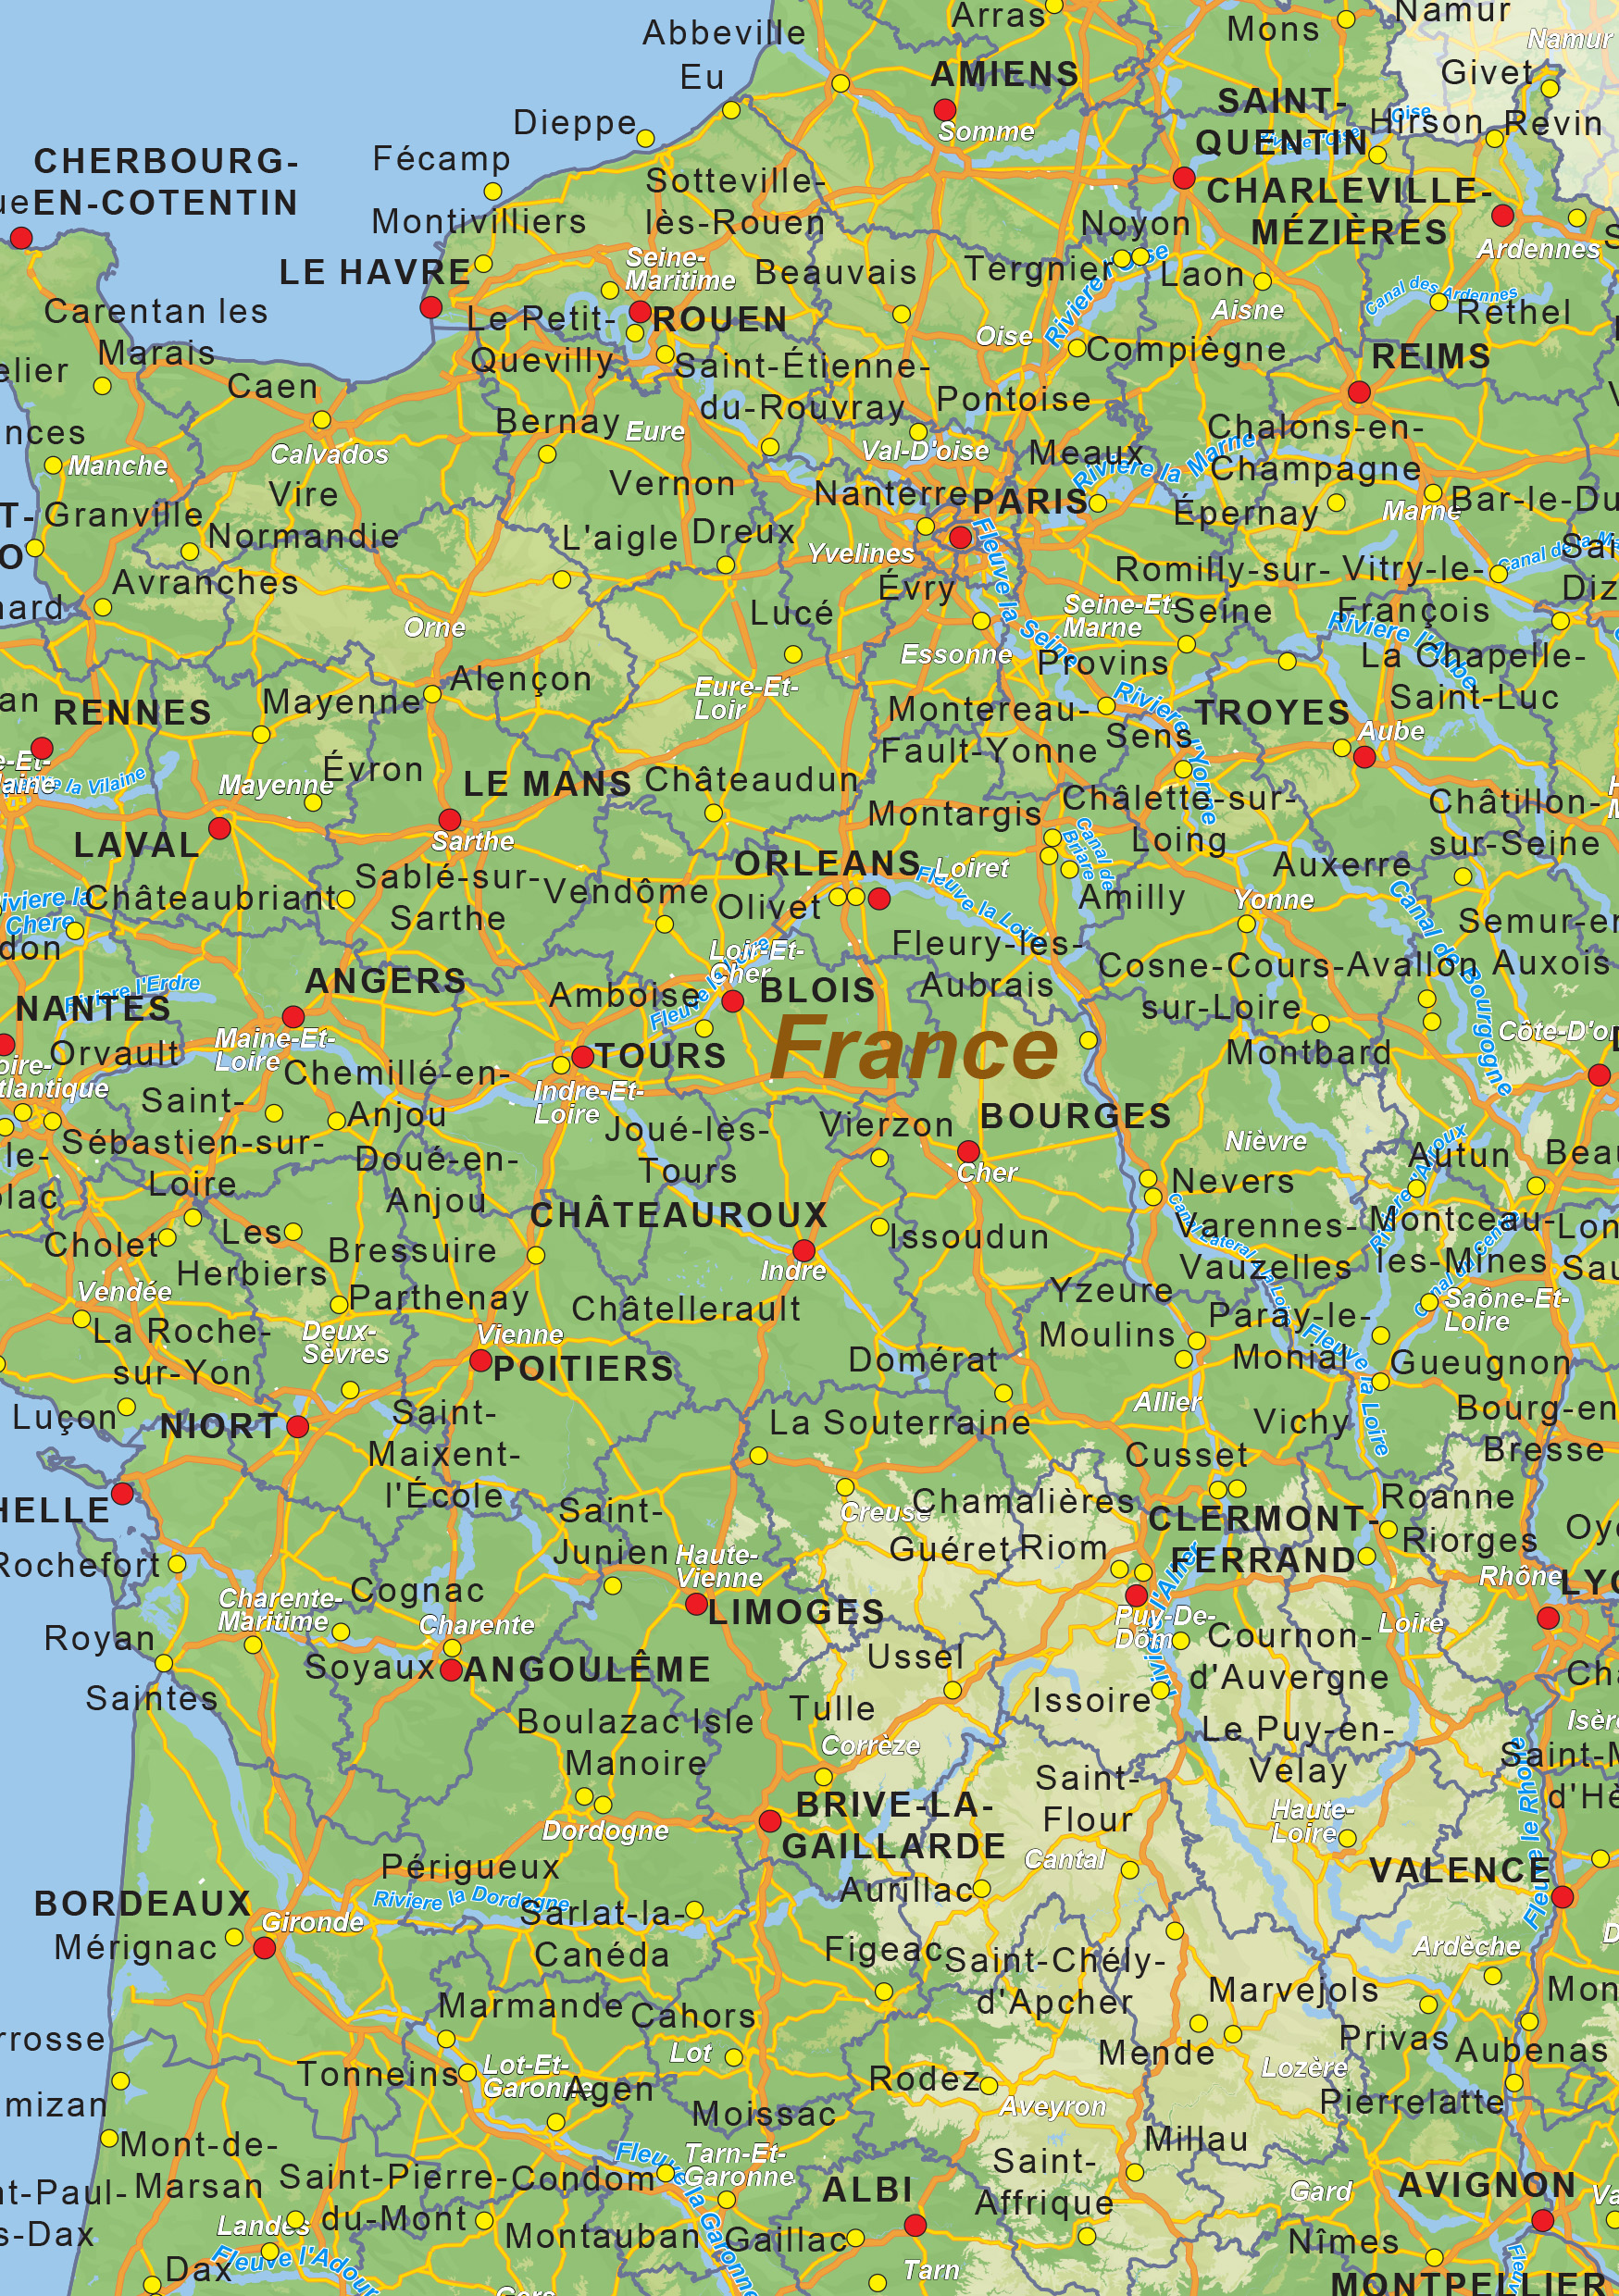 Digital physical map of France 1433 | The World of Maps.com